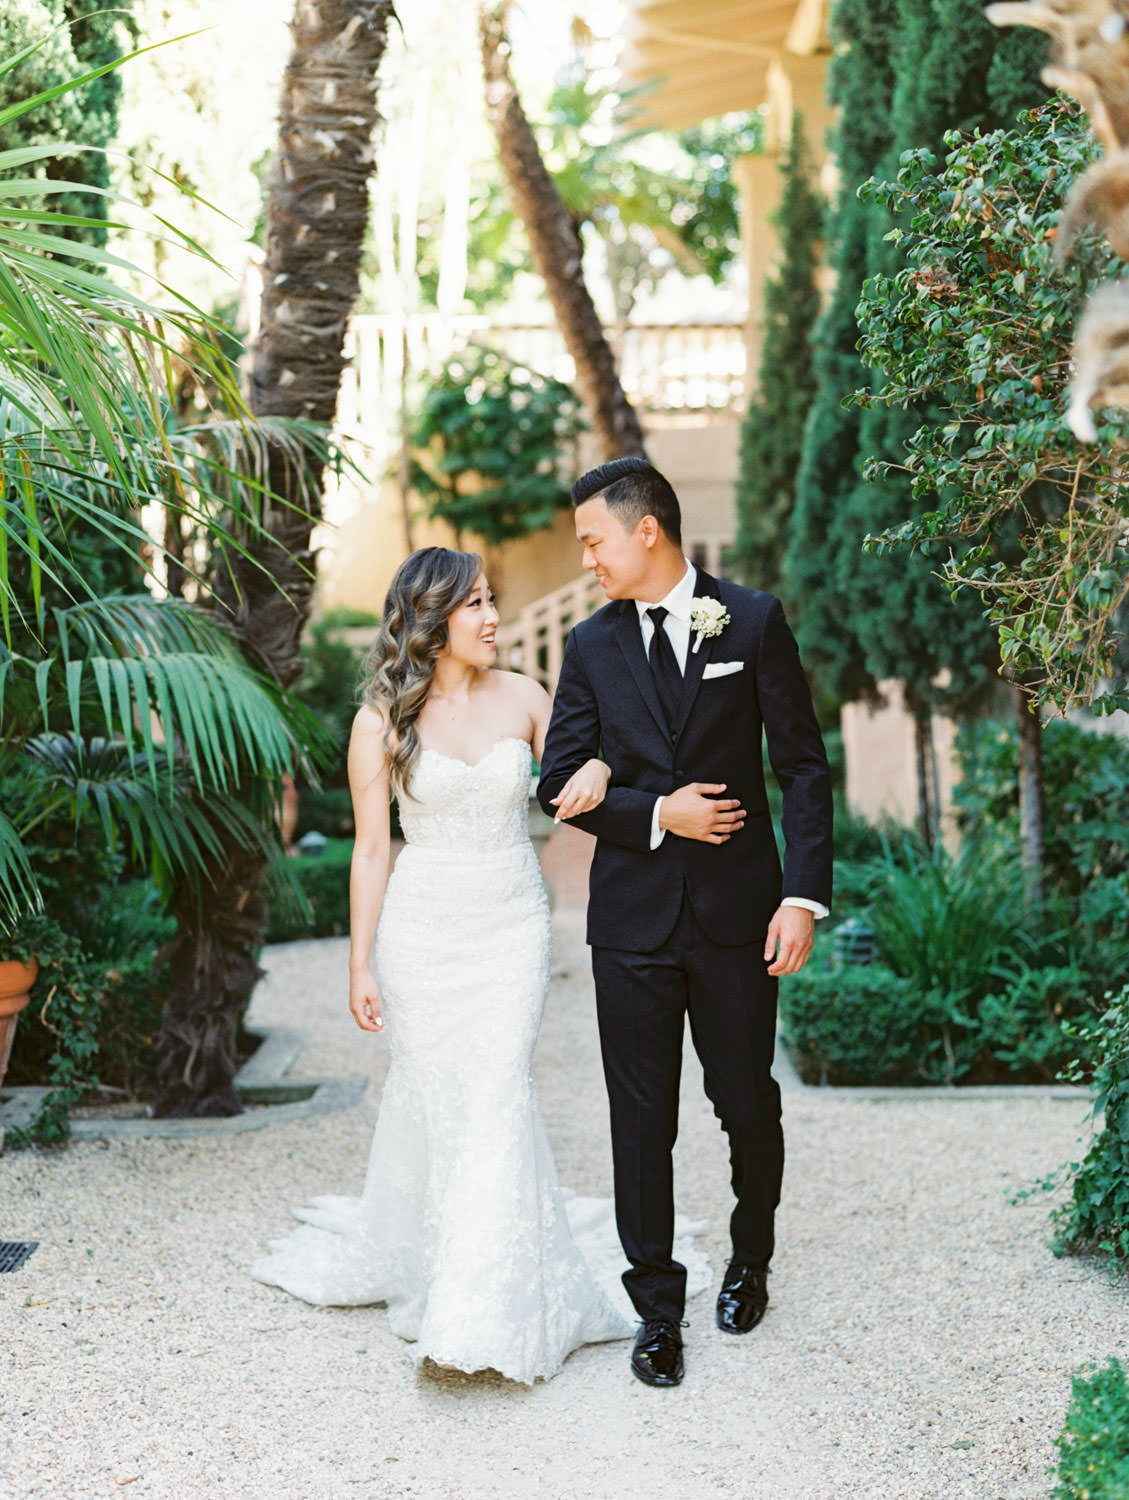 Bride and groom portrait in front of cyprus tree grove. Groom in a three piece black tuxedo and bride in a Martina Liana gown. Wedding at Rancho Bernardo Inn. Film photo by Cavin Elizabeth Photography